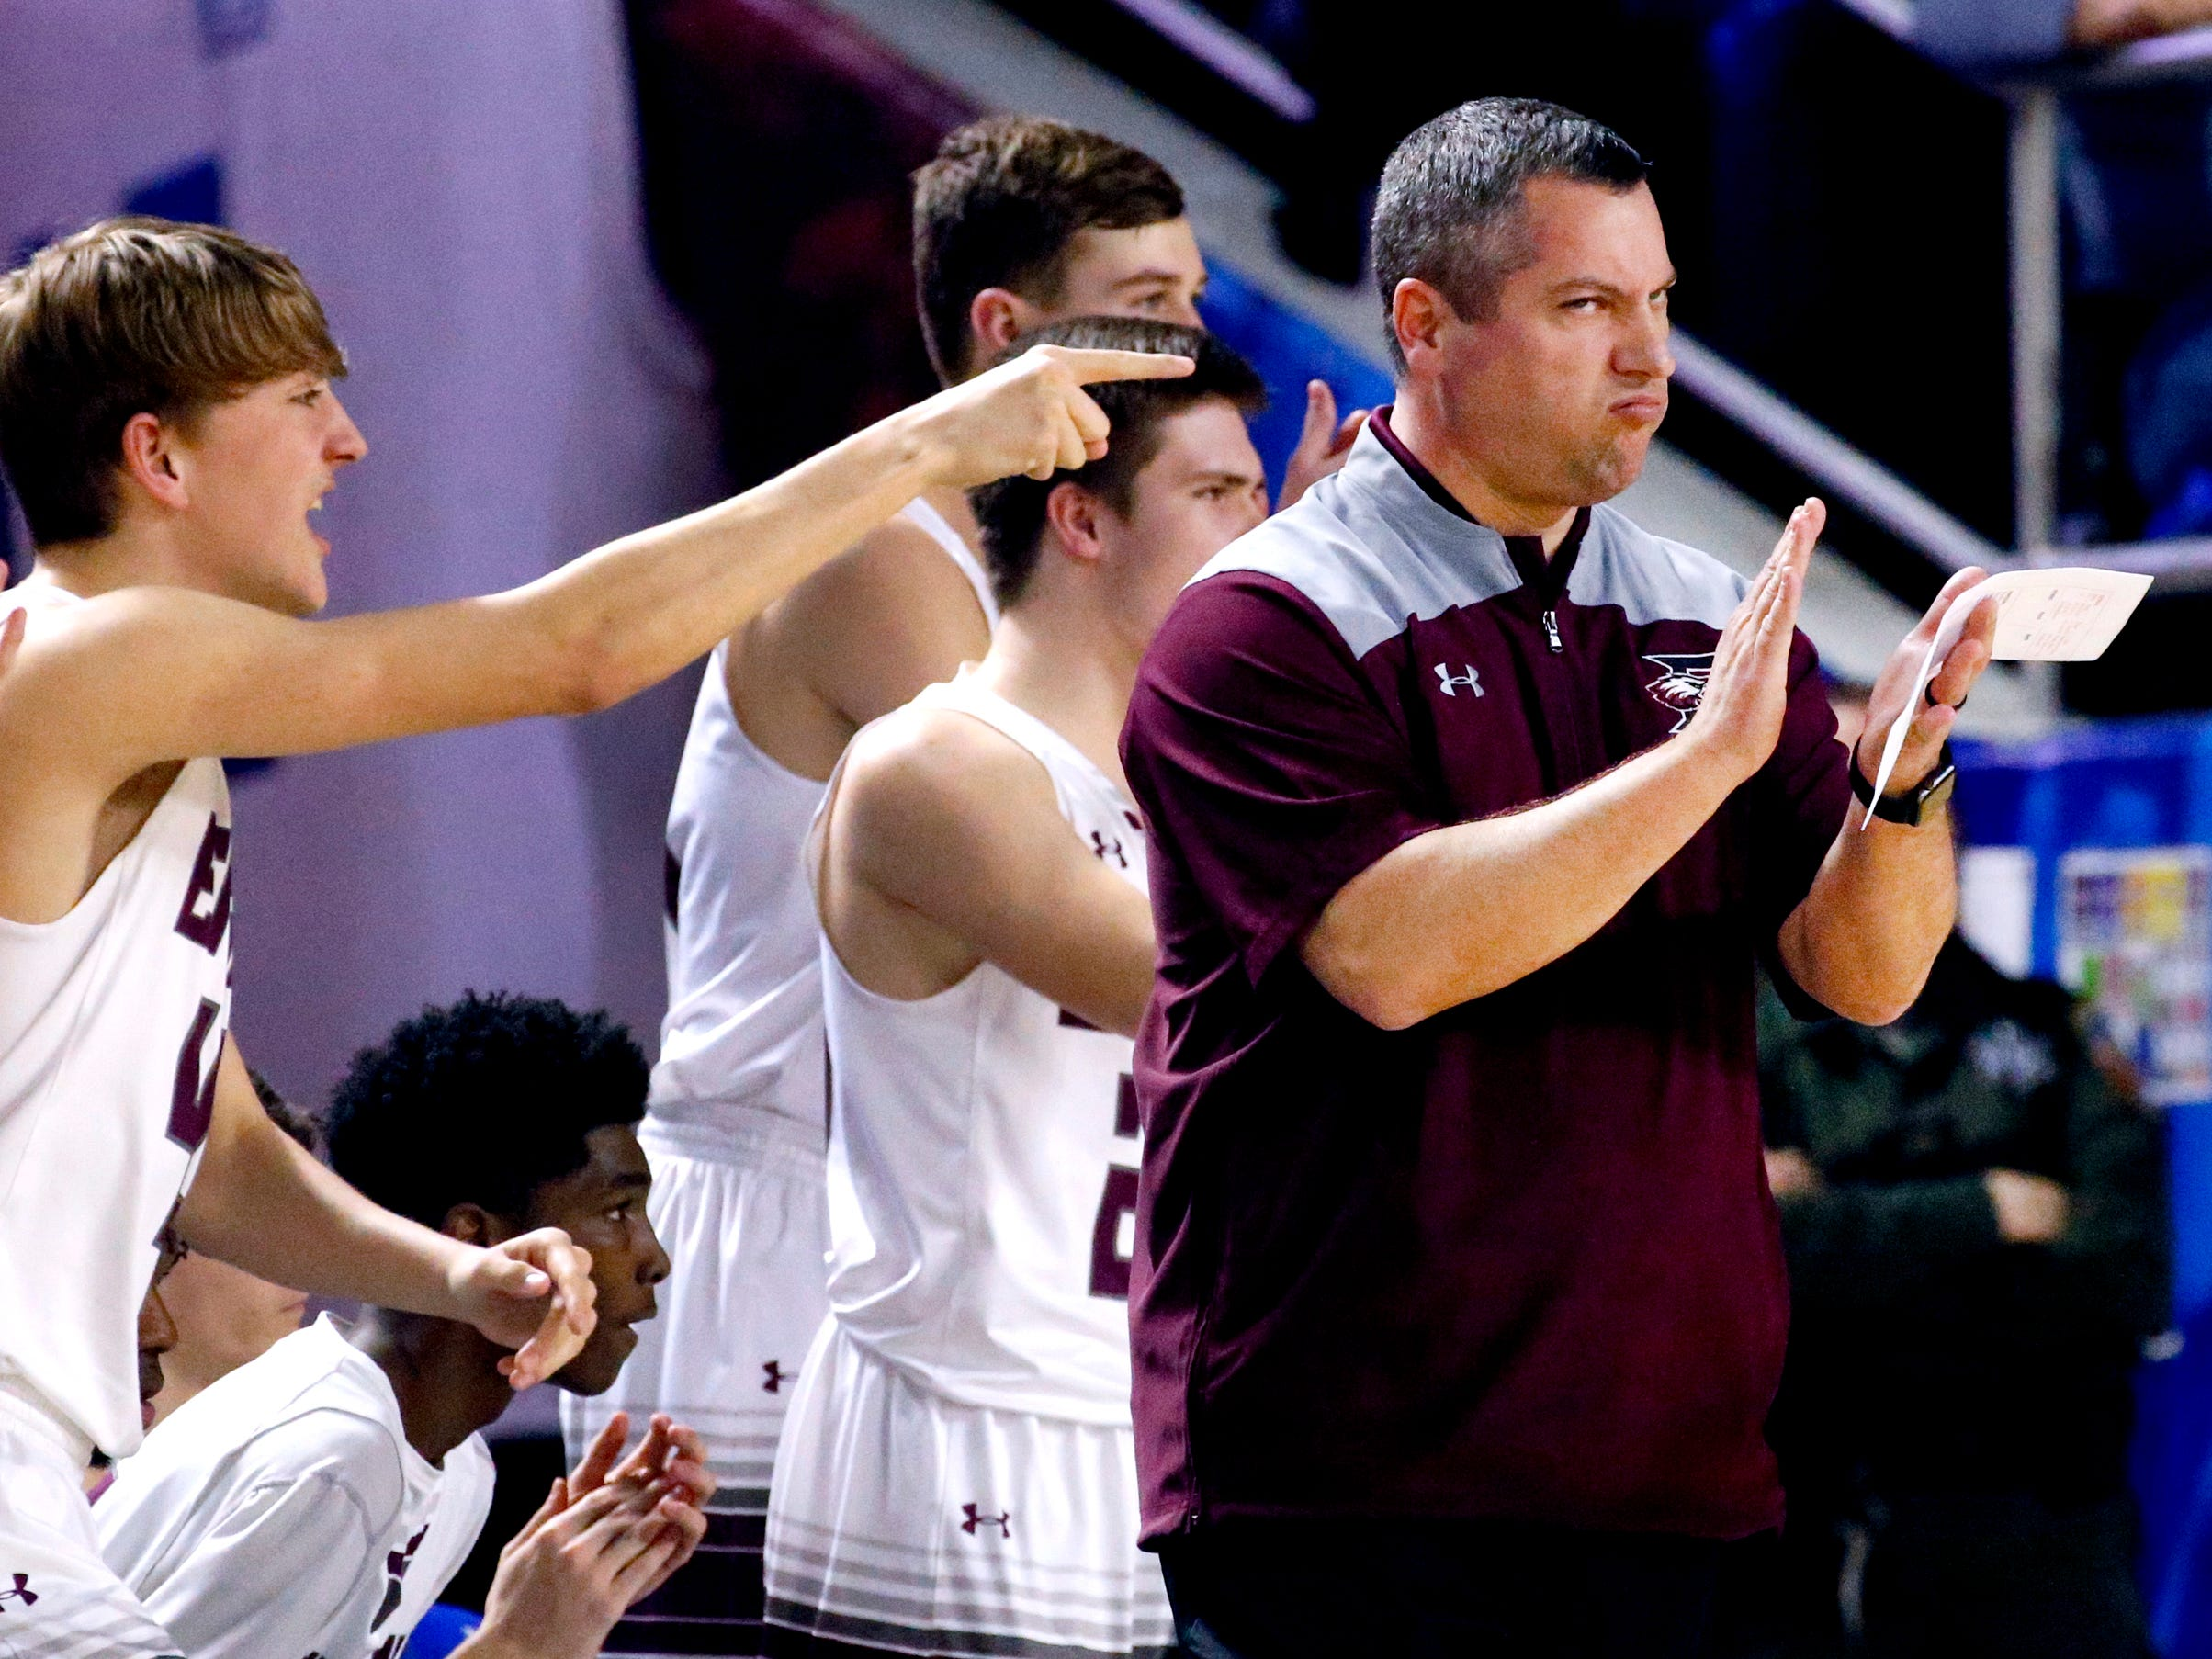 Eagleville's head coach Davy McClaran on the sidelines during the semifinal round of the TSSAA Class A Boys State Tournament against Columbia Academy, on Thursday, March 15, 2019, at Murphy Center in Murfreesboro, Tenn.